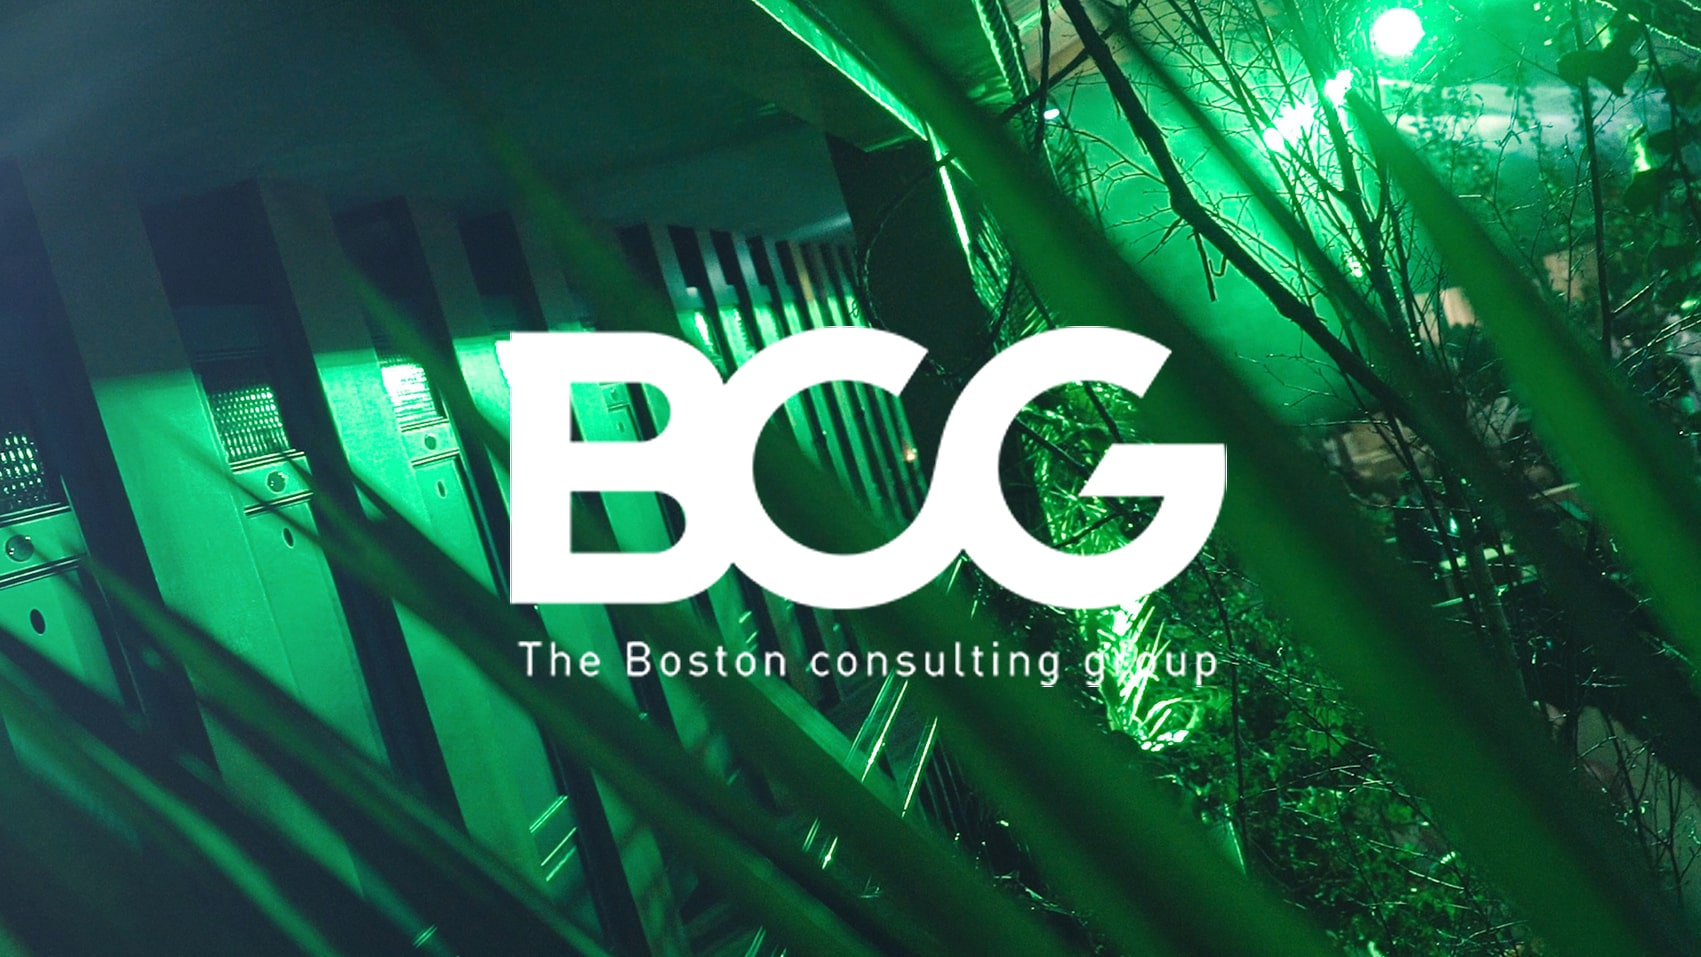 BCG, bostonconsultinggroup, evenemententreprise, soireeentreprise, videosoireeentreprise, videomolitor, videosoireejungle, jungleevenement, BCGevenementvideo, bostonconsultinggroupevideo, parisevenementvideo, cubriks, theodeffaux,